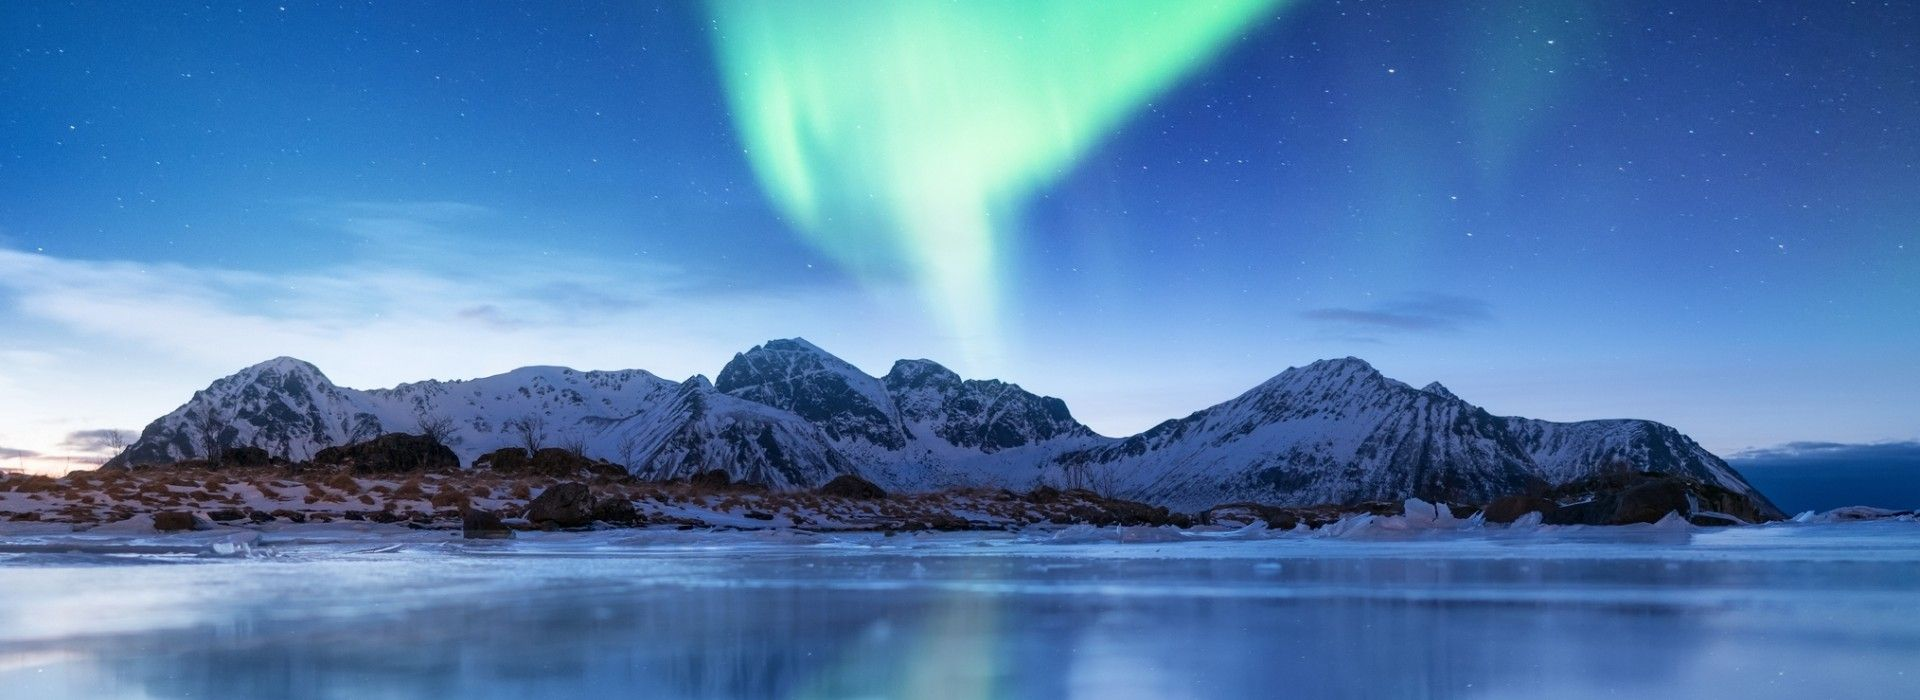 Boat tours, water sports and marine wildlife in Scandinavia